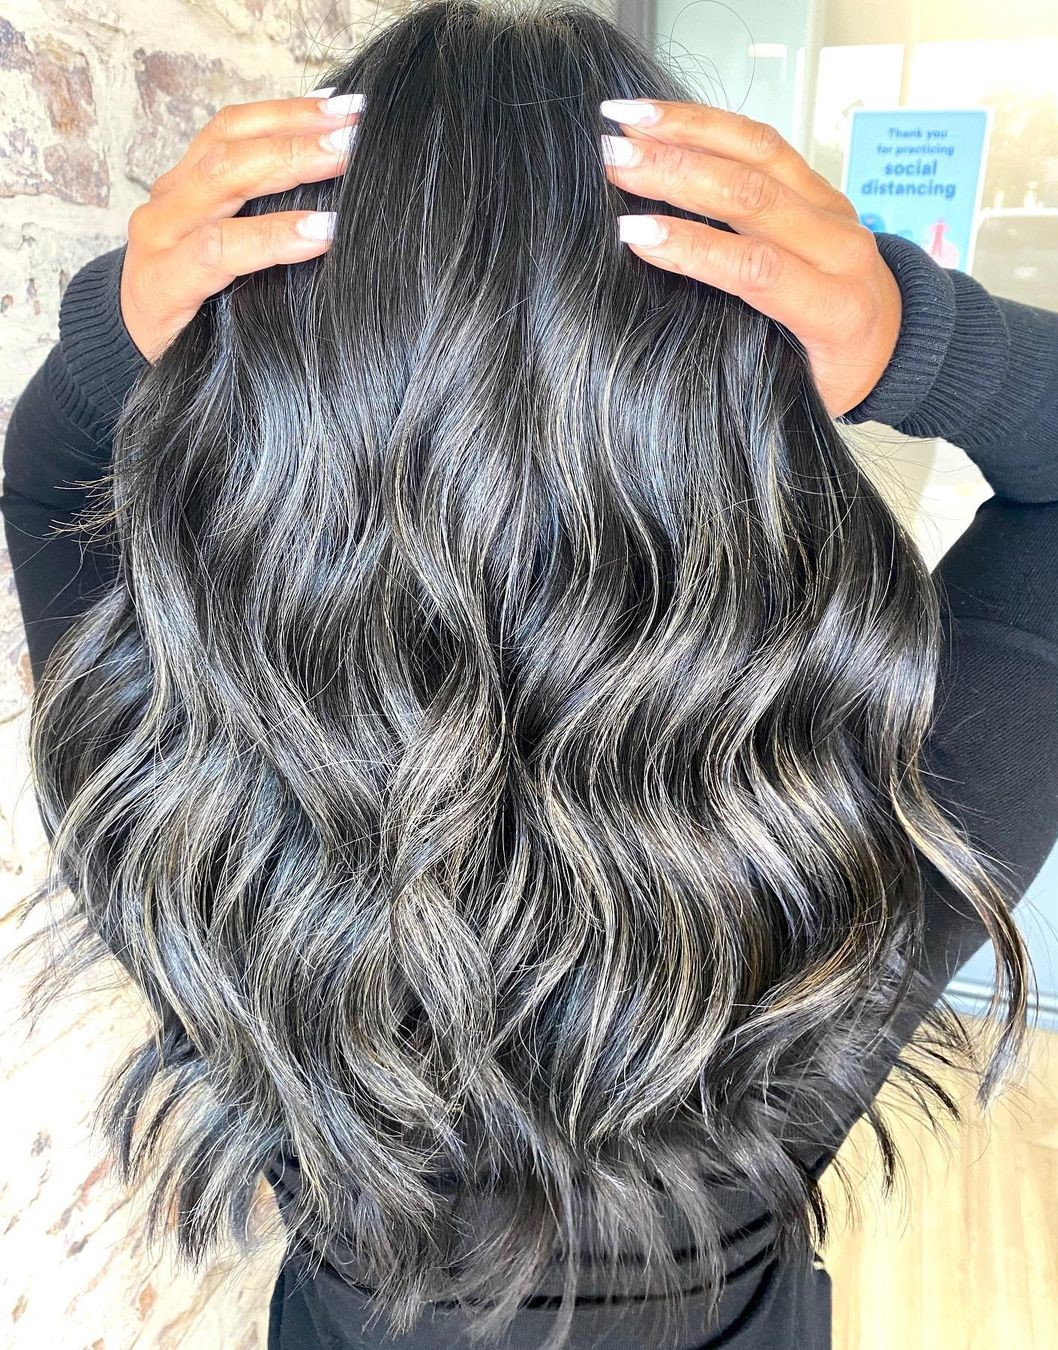 Silver and Gold Highlights for Black Hair